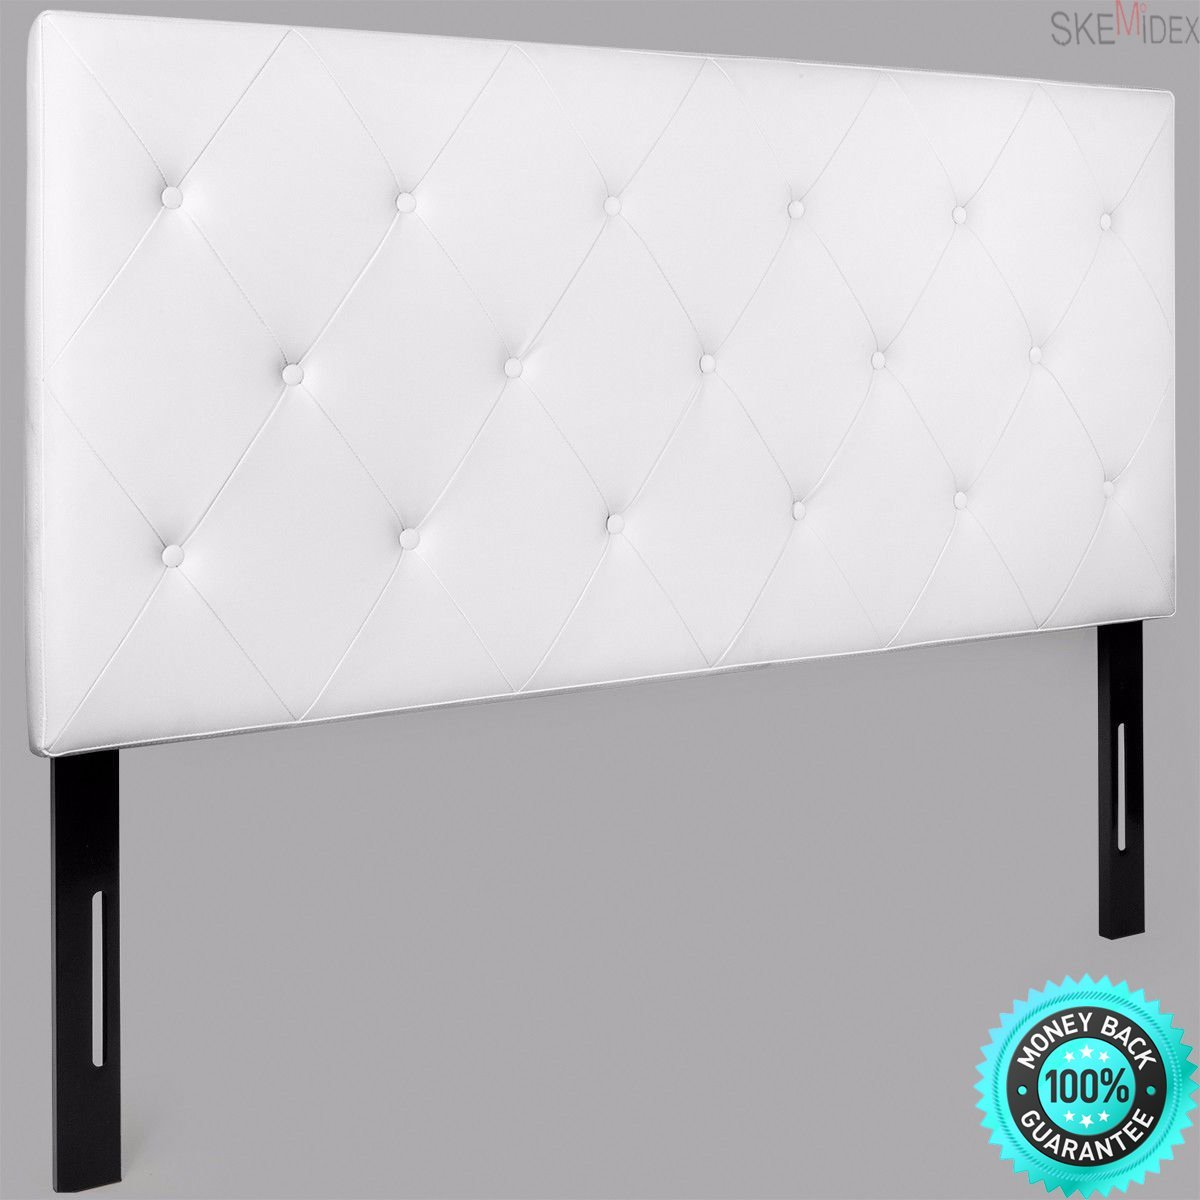 SKEMIDEX---Upholstered Tufted diamond button Headboard Queen Modern pu leather Bedroom And headboard and footboard bed frame king headboard and footboard sets wood headboard and footboard sets